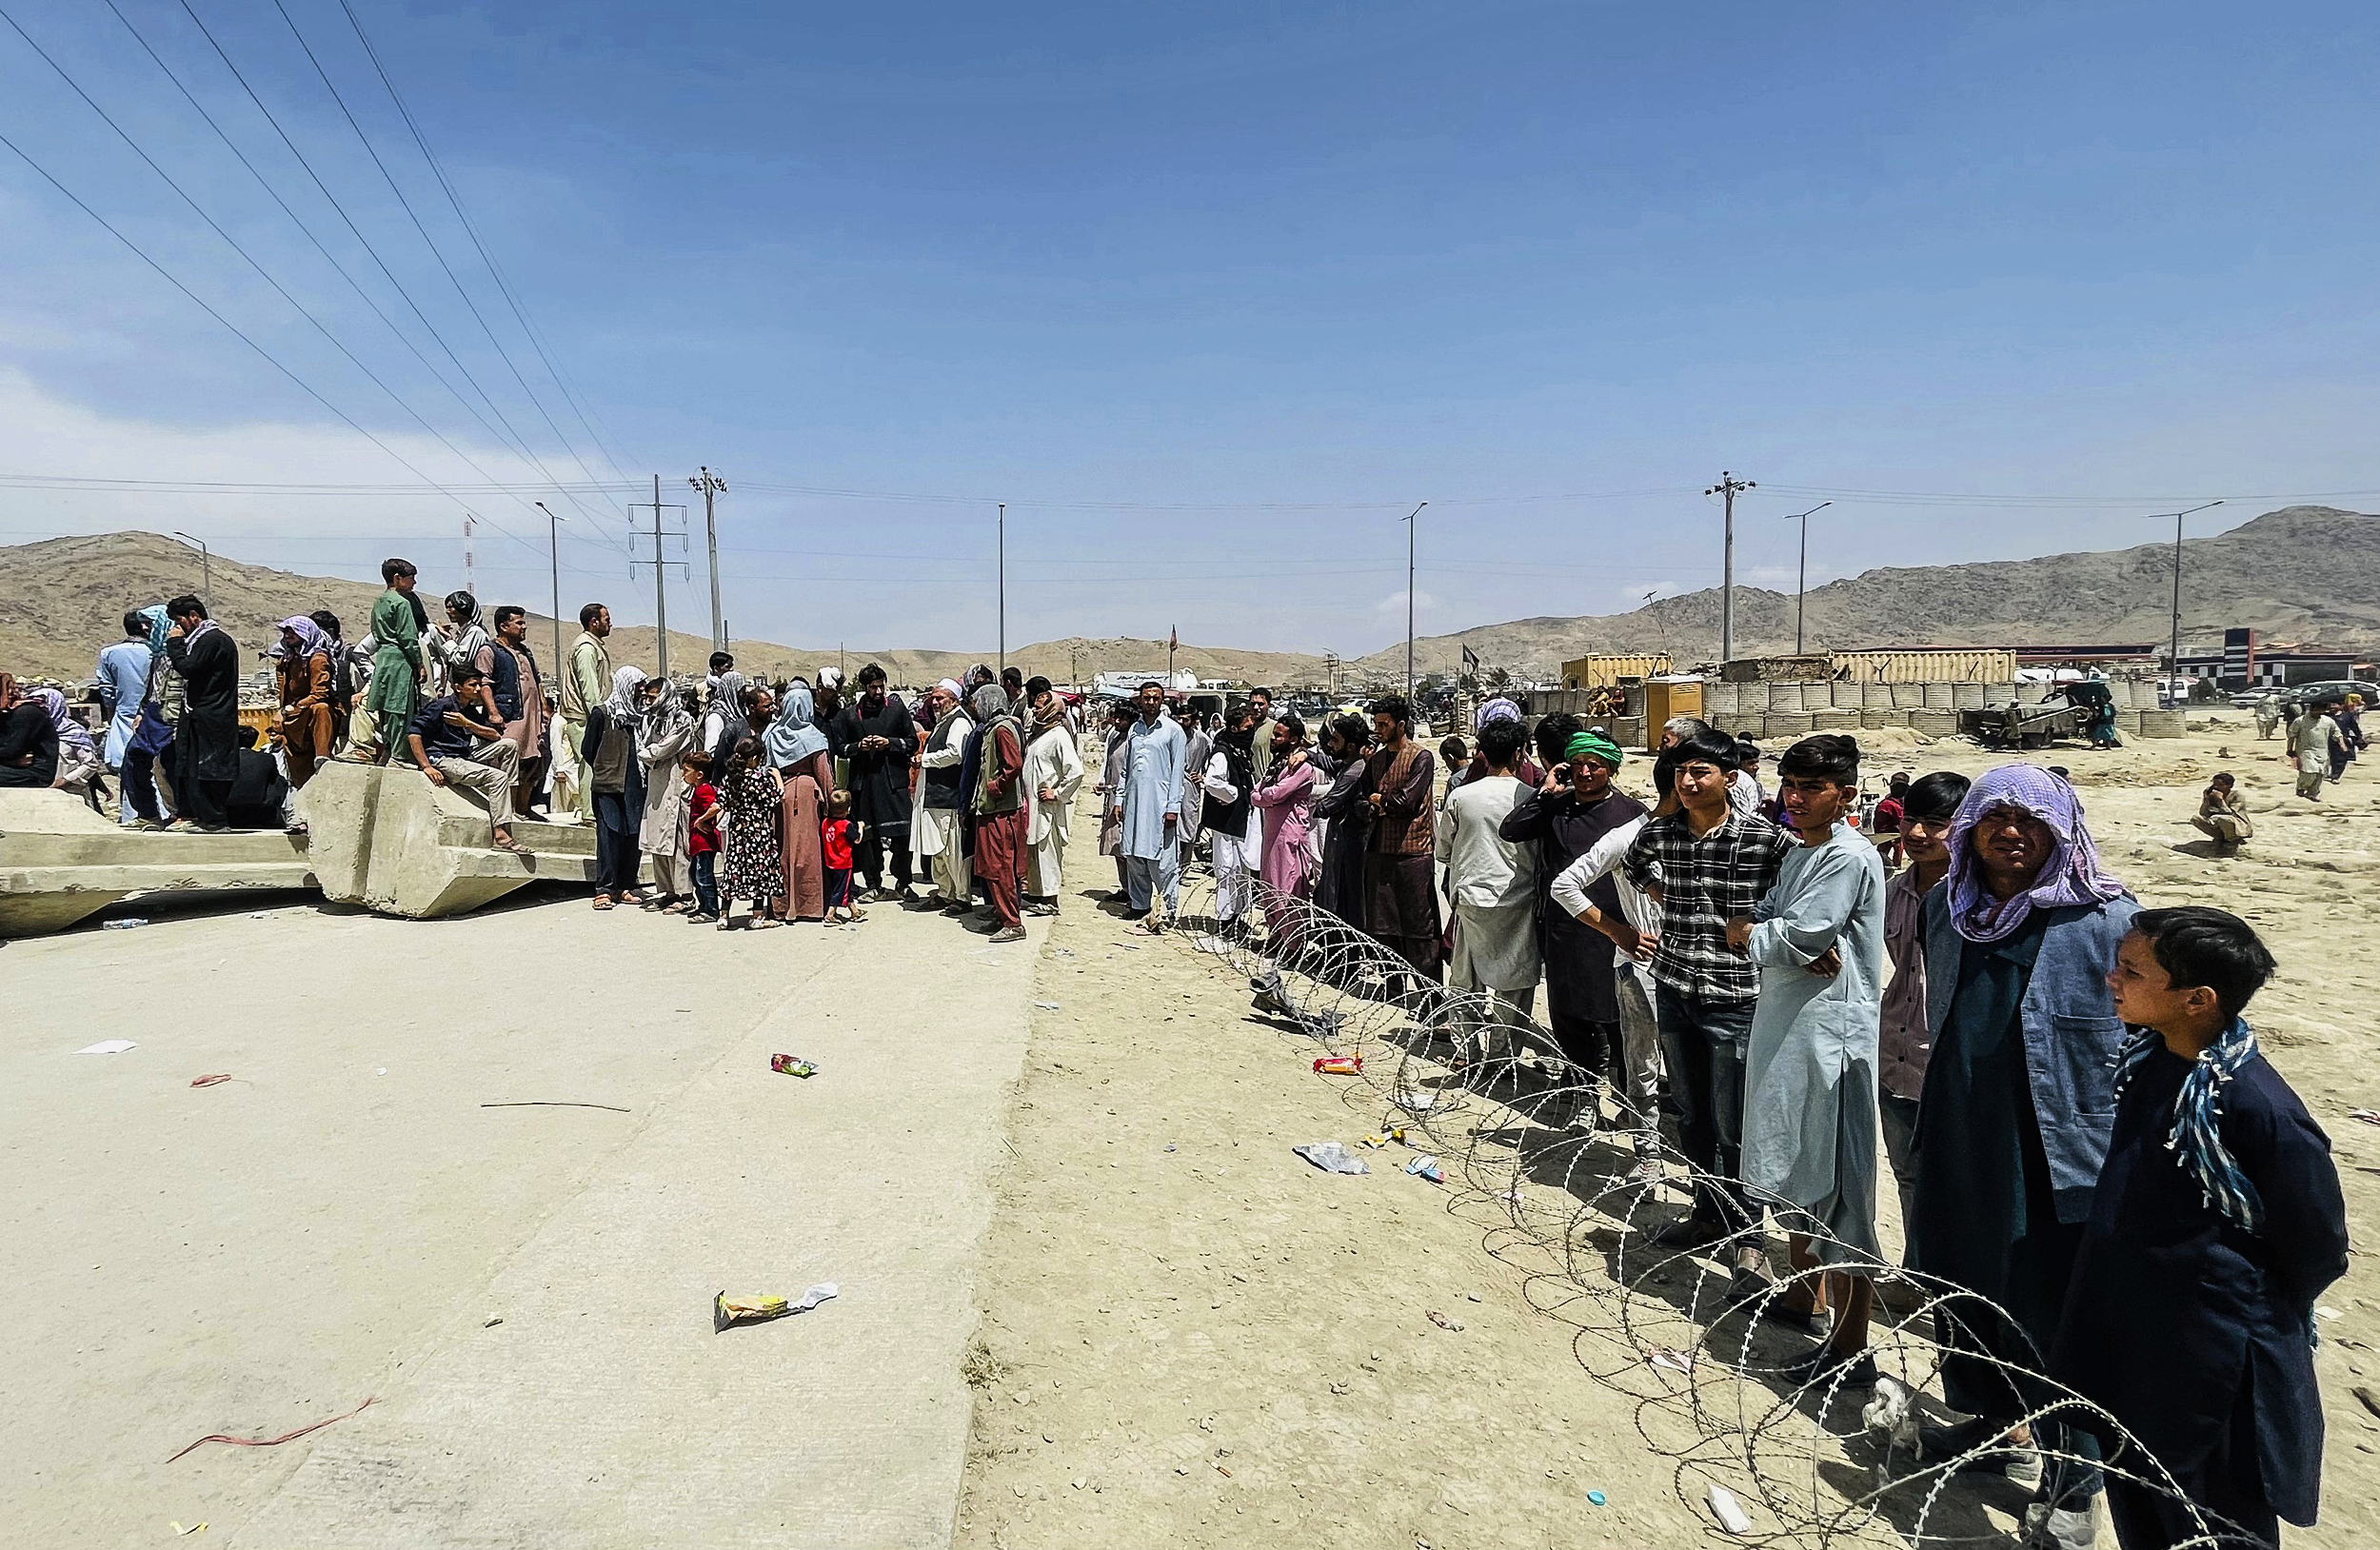 A heated political debate is coming to Congress: What to do about Afghan refugees